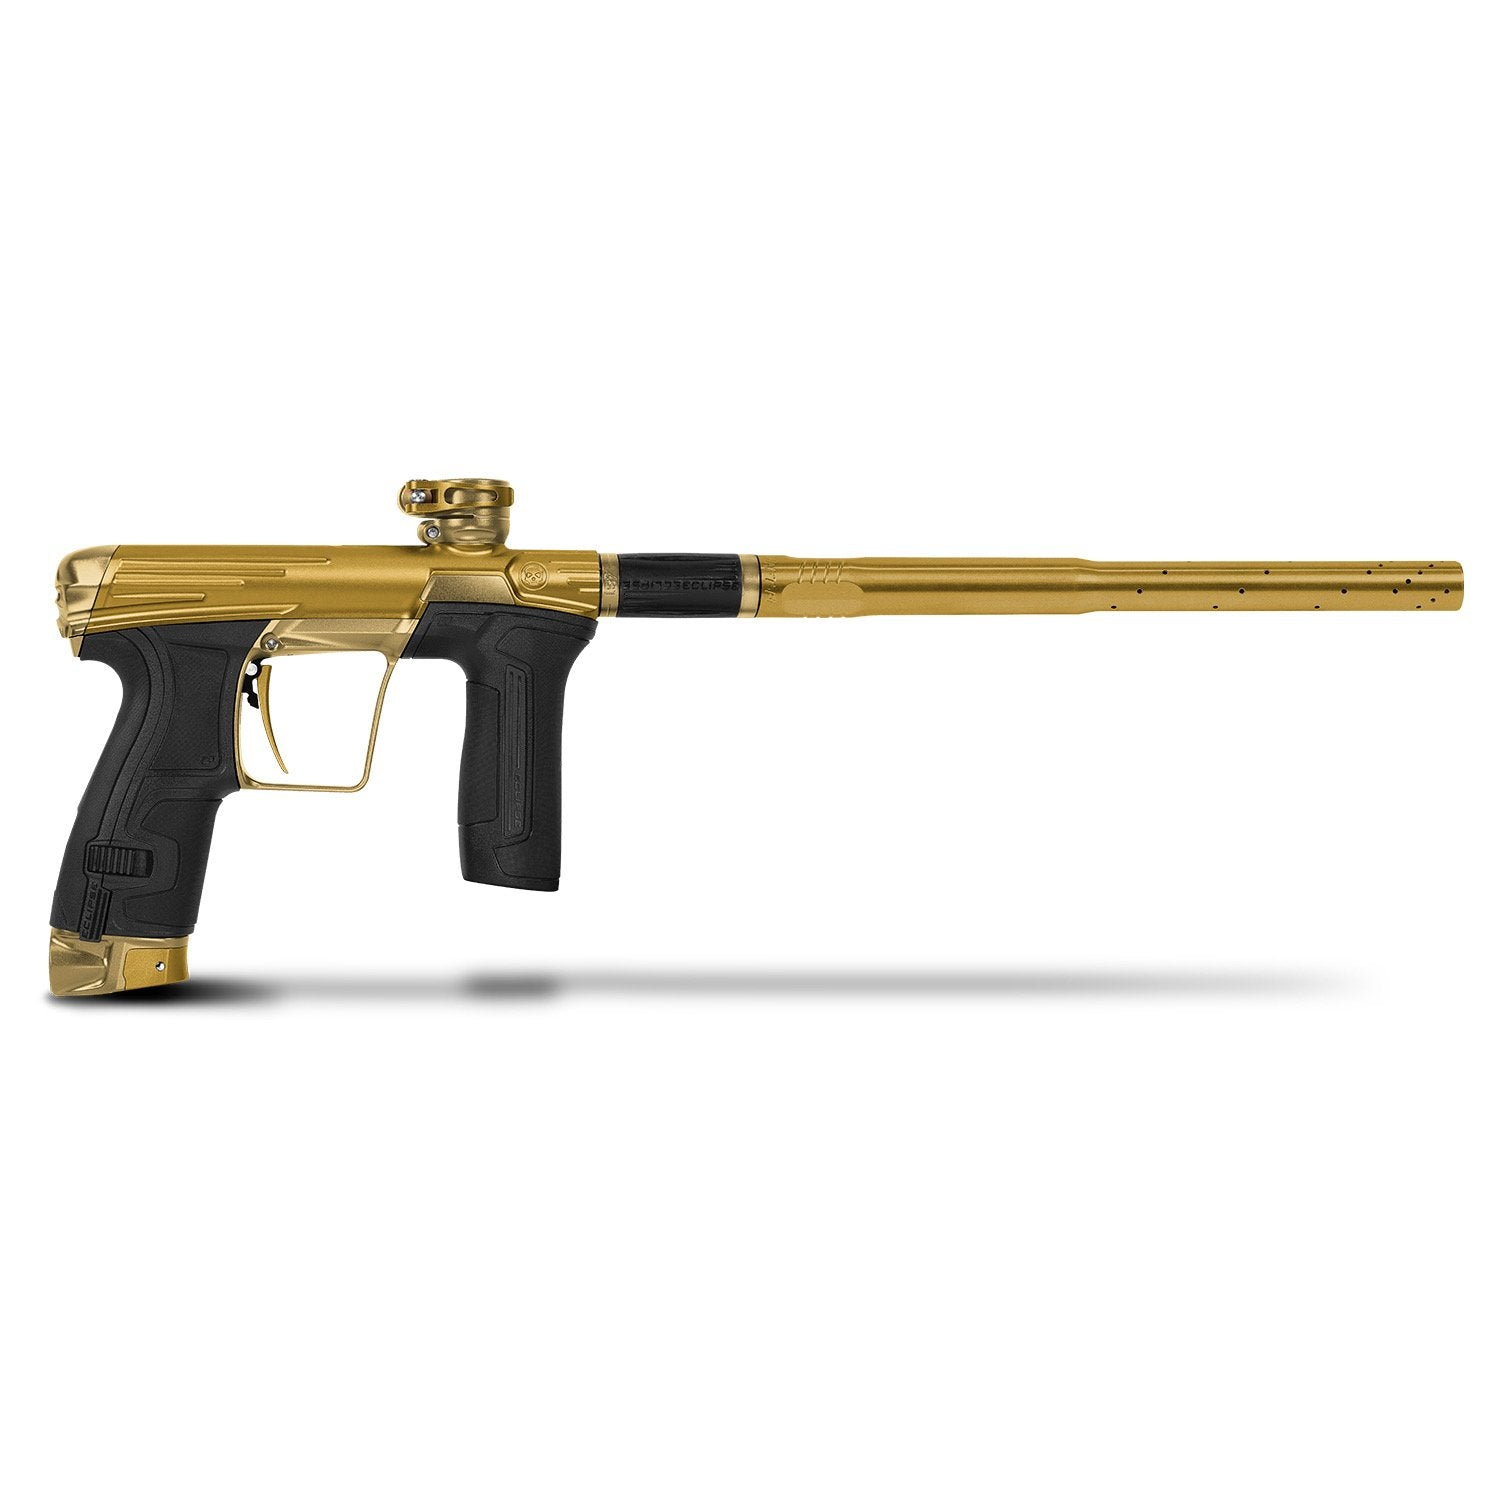 Planet Eclipse Infamous CS2 Pro Paintball Gun- Bullion